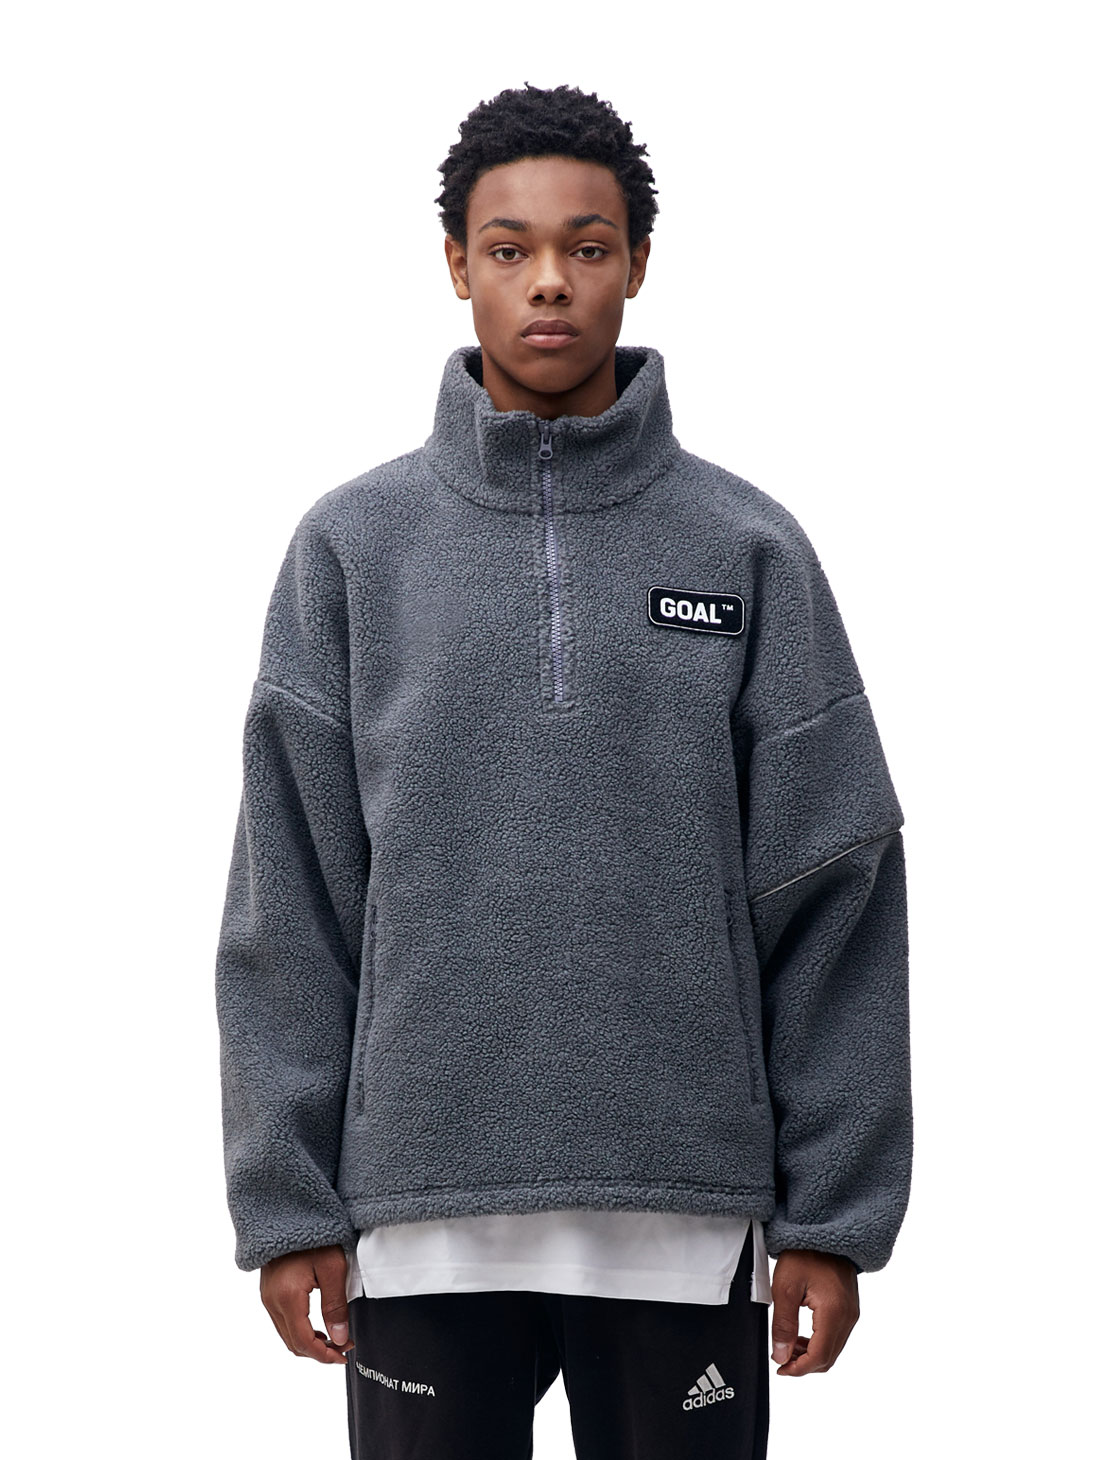 GOALSTUDIO (Sold Out) FLEECE ZIP UP PULLOVER - GREY